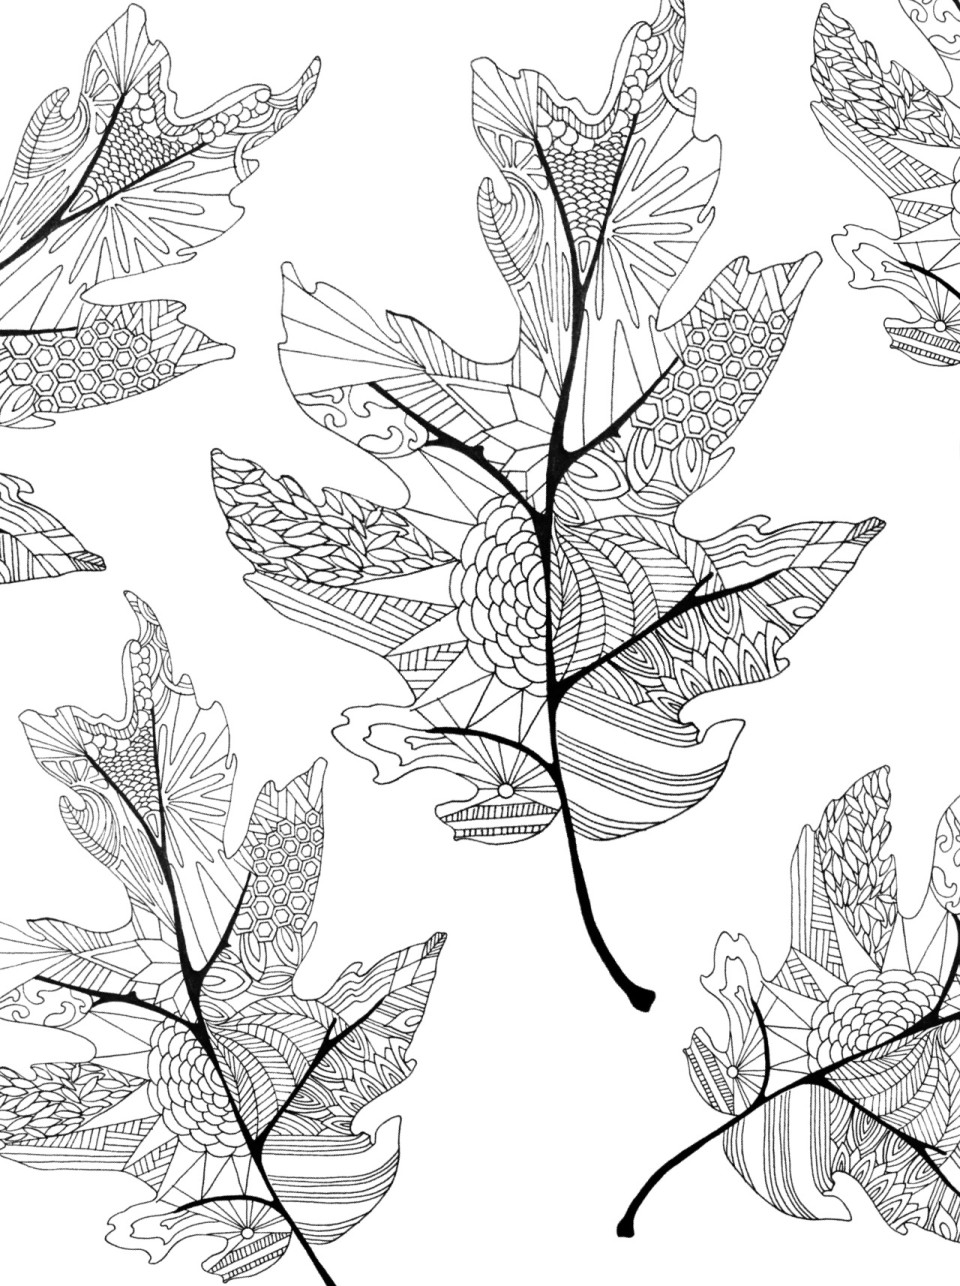 leaf coloring pages for adults - photo#5